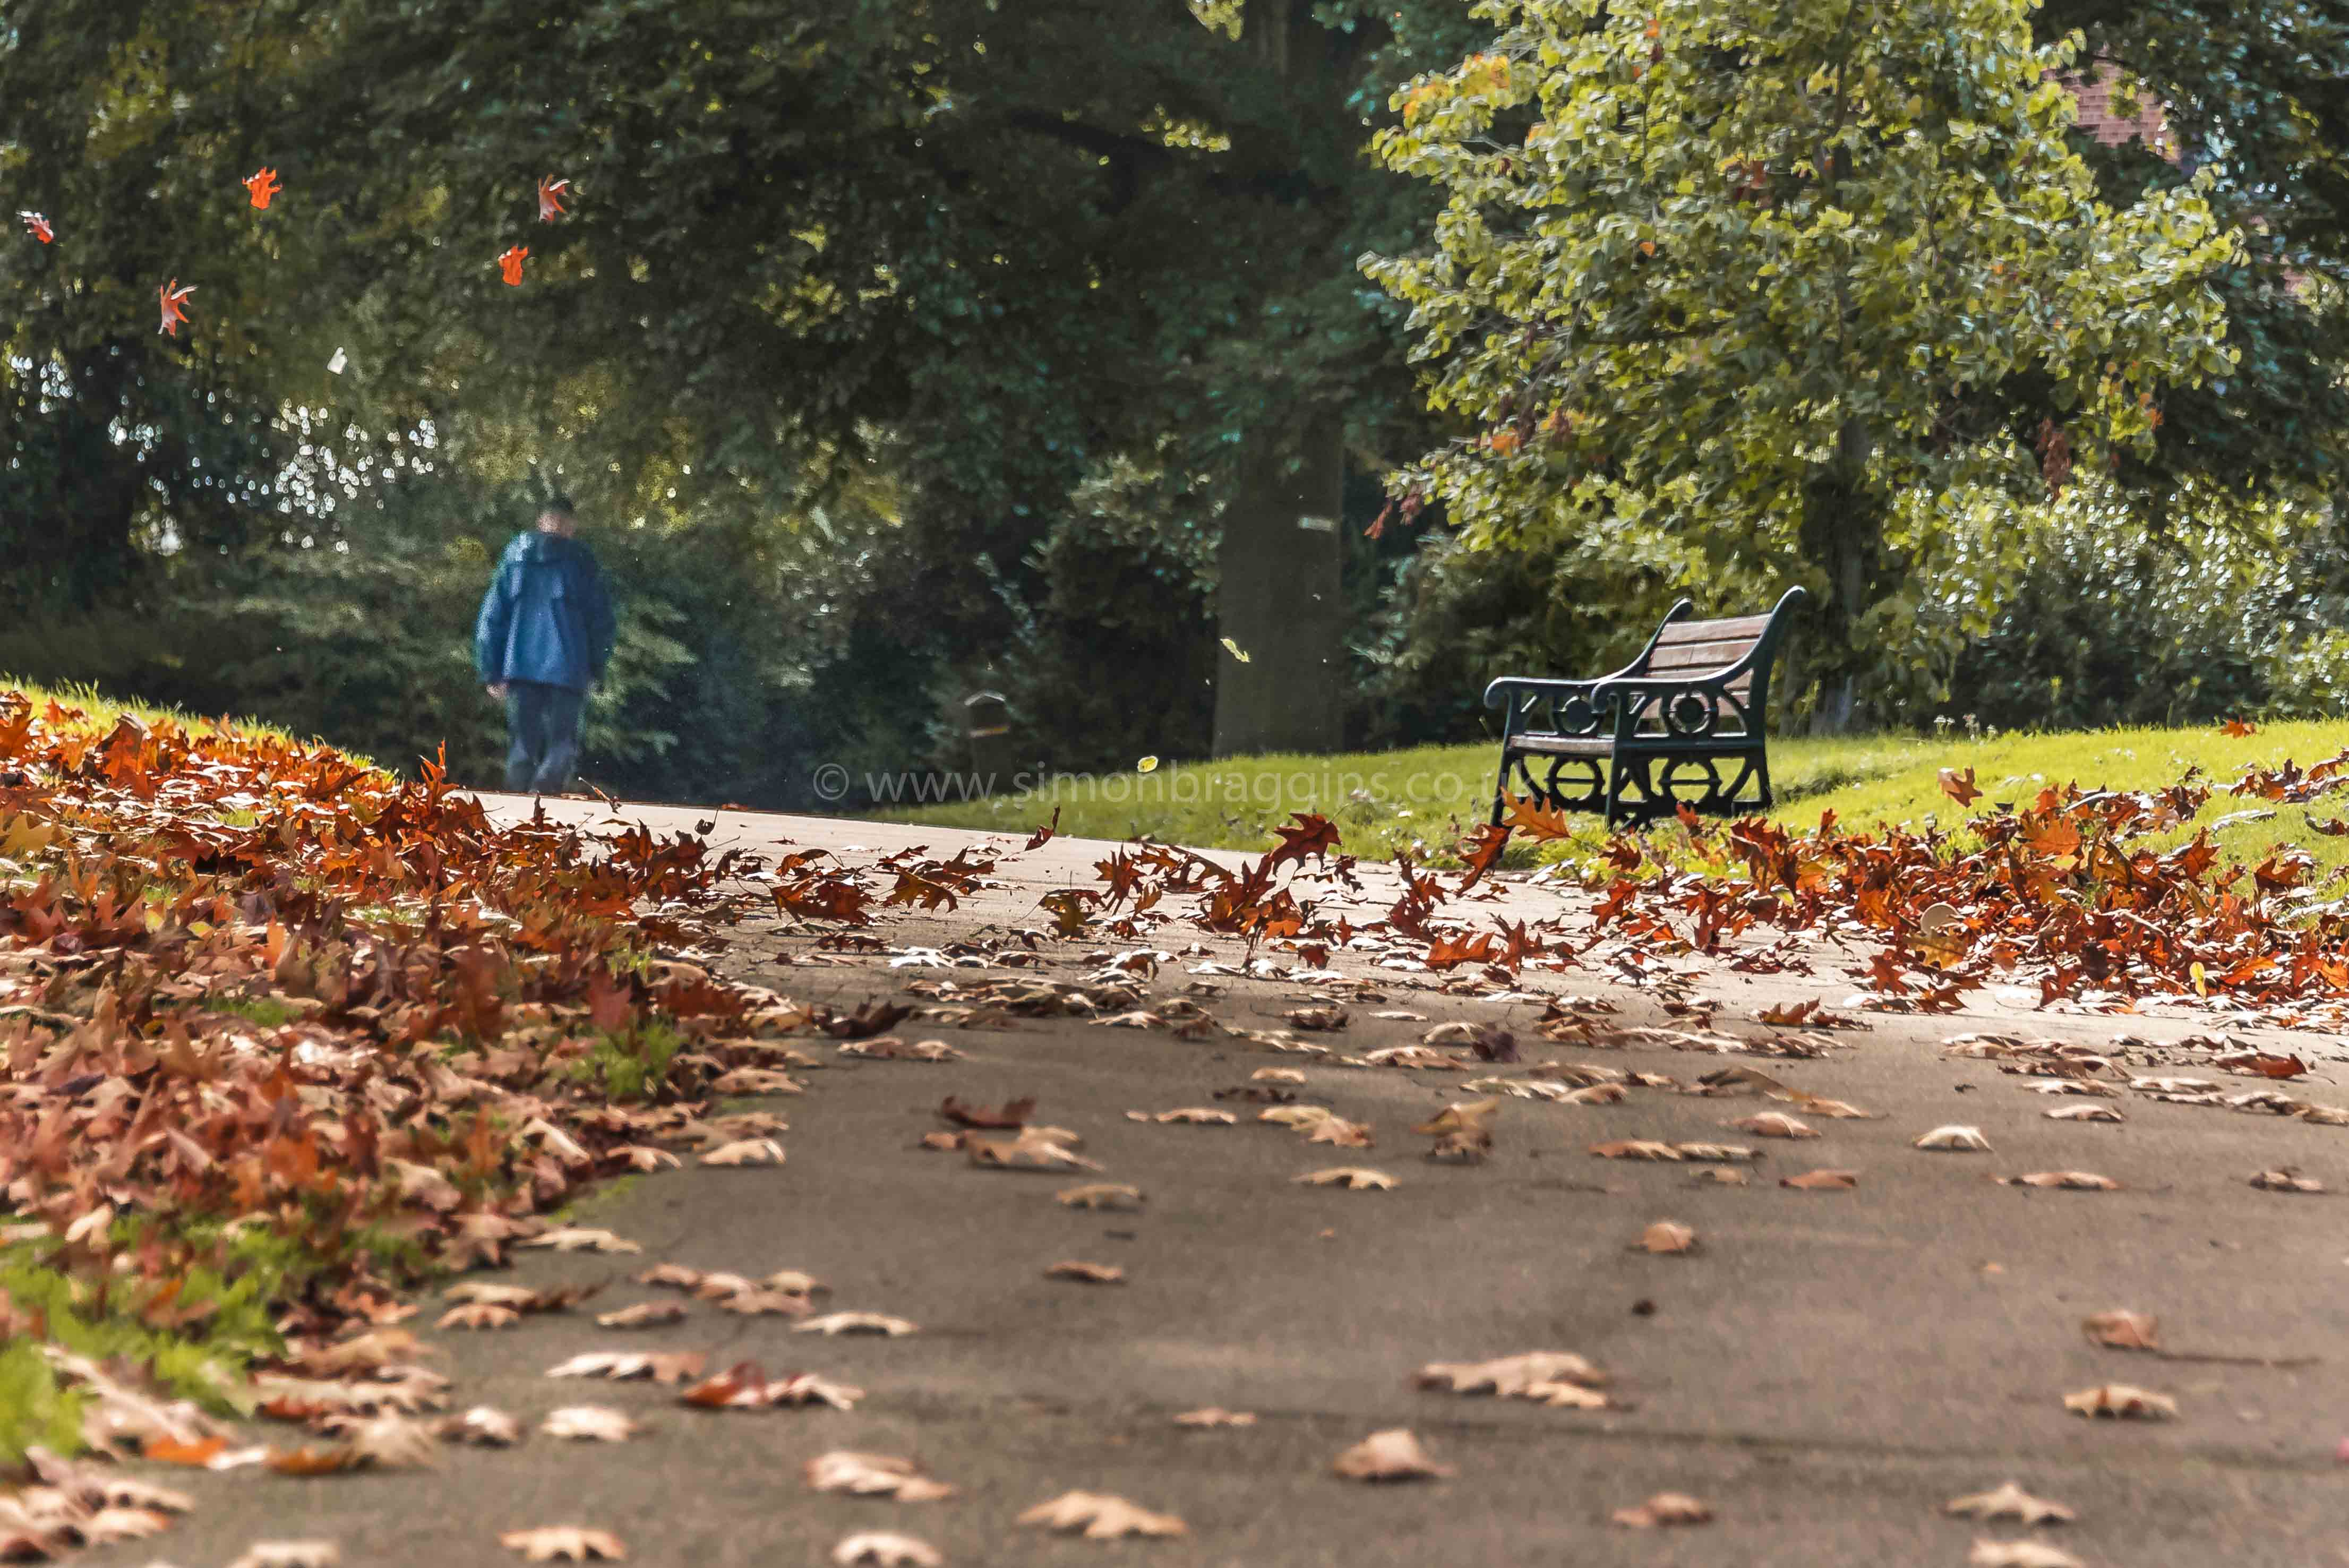 Autumn Gust: A gust of wind blows up leaves - Springfield Park, October 2017